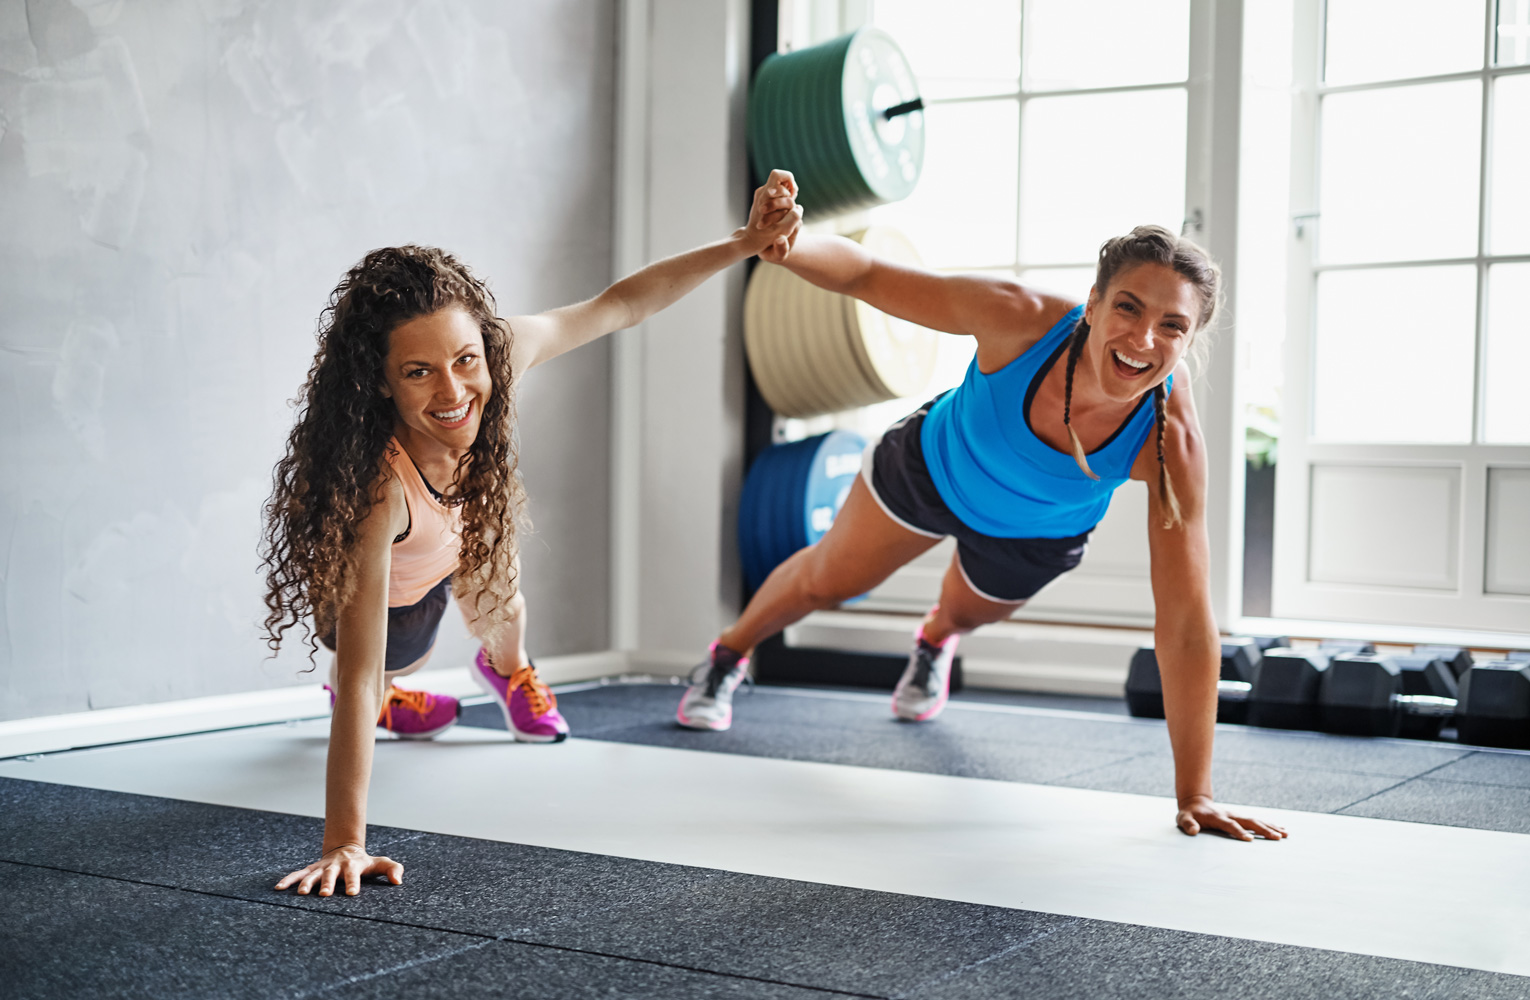 Two women exercising at the gym.